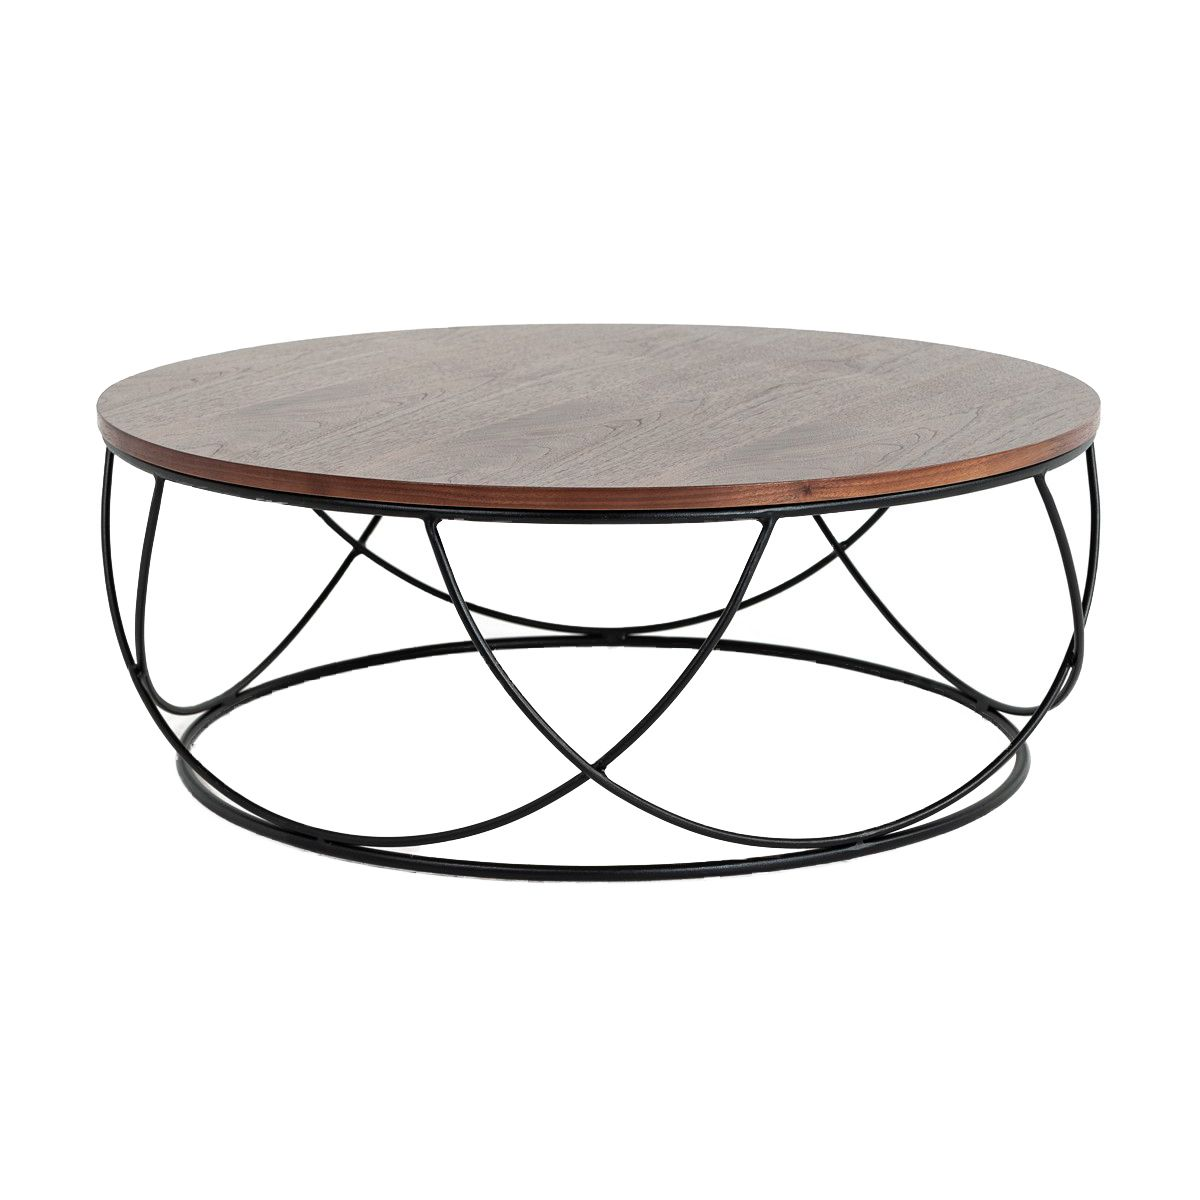 Strand Coffee Table Event Trade Show Furniture Rental Formdecor Round Coffee Table Modern Coffee Table Coffee Table Walmart [ 1200 x 1200 Pixel ]